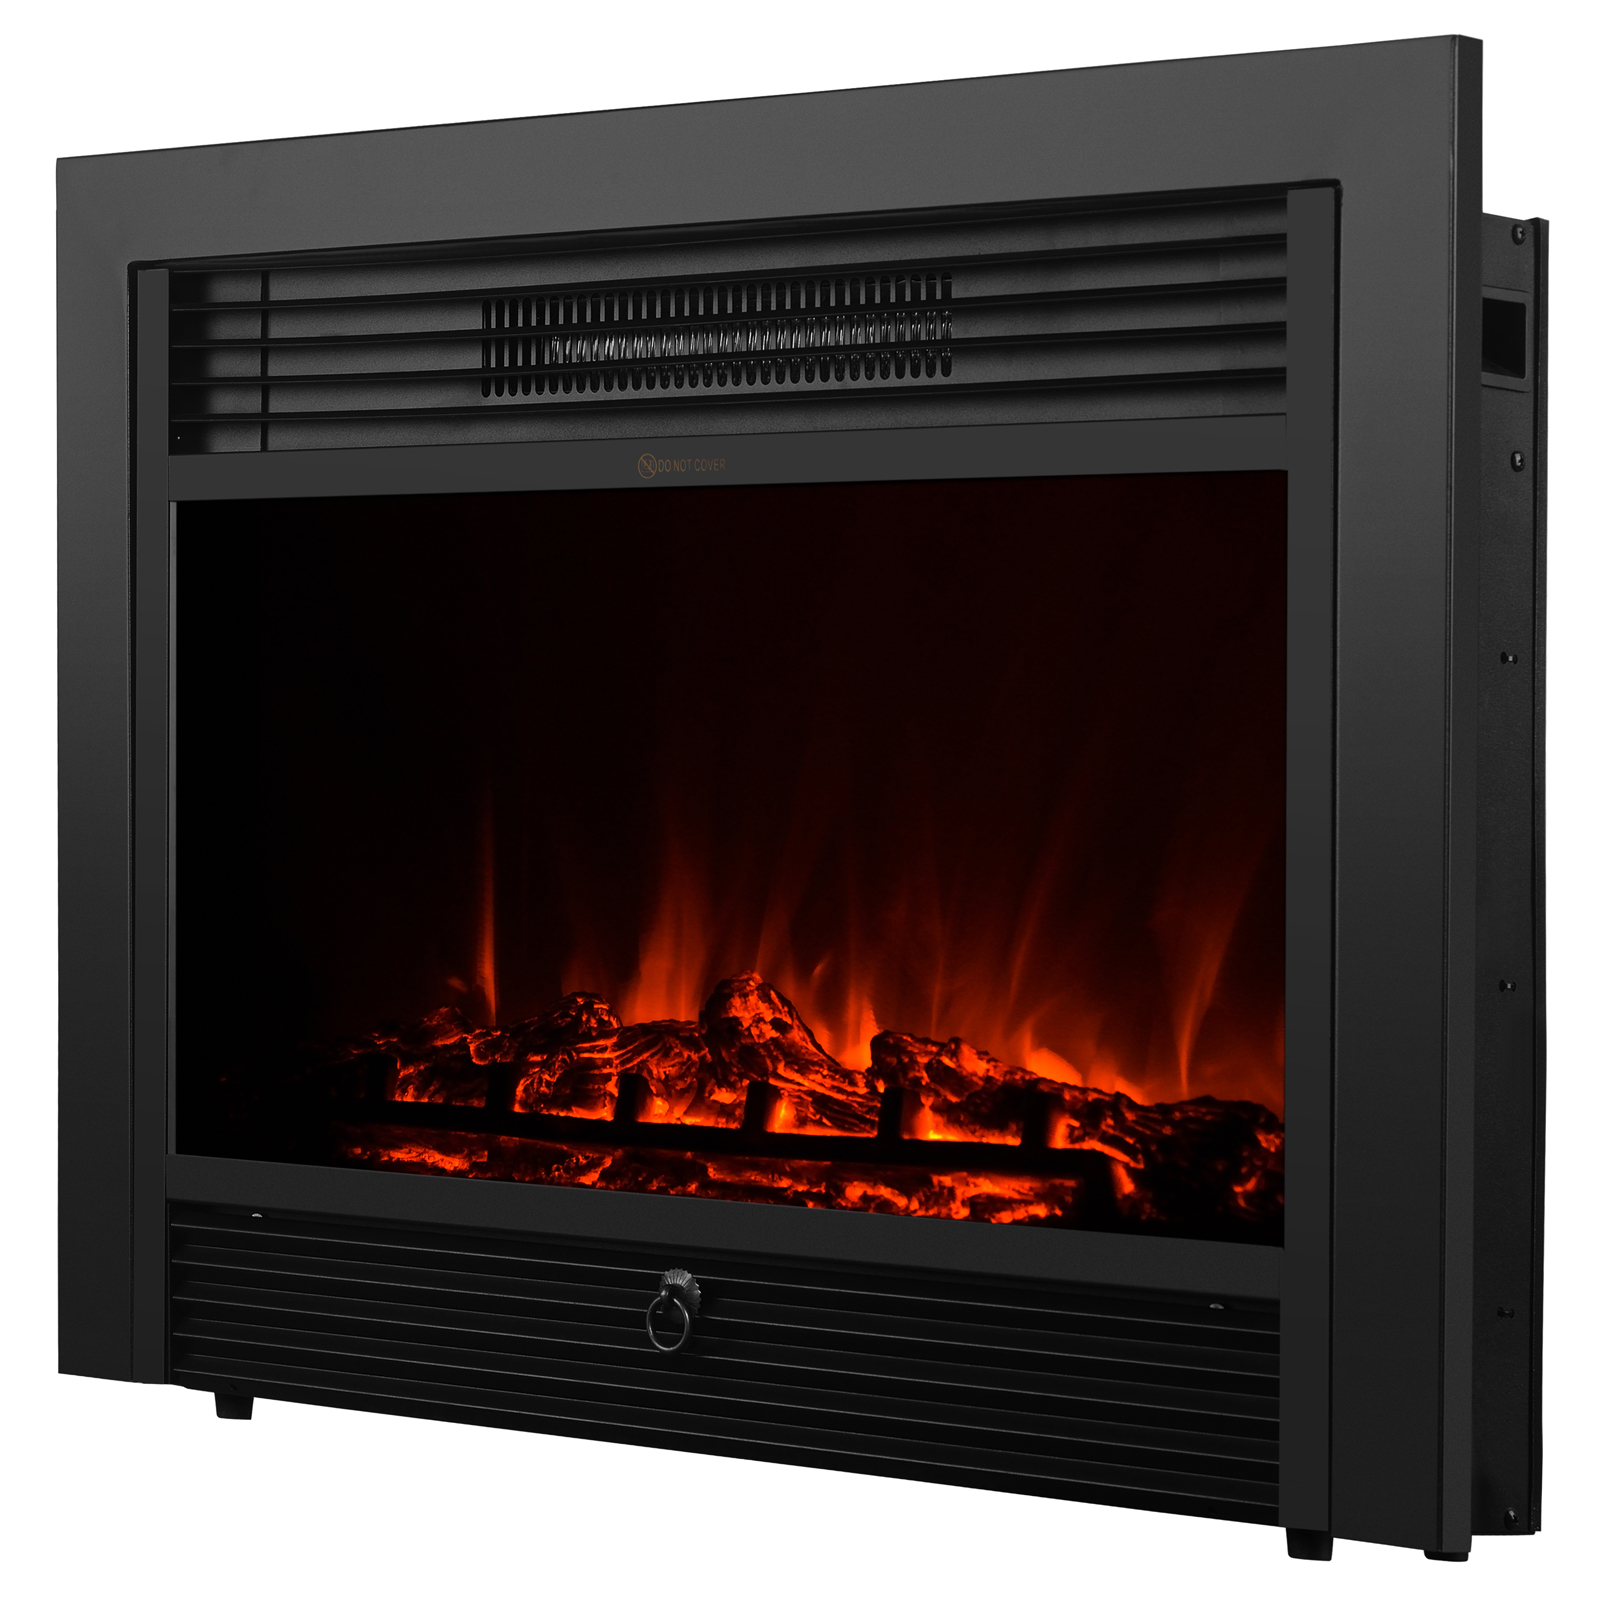 embedded 28 5 electric insert heater fireplace log flame